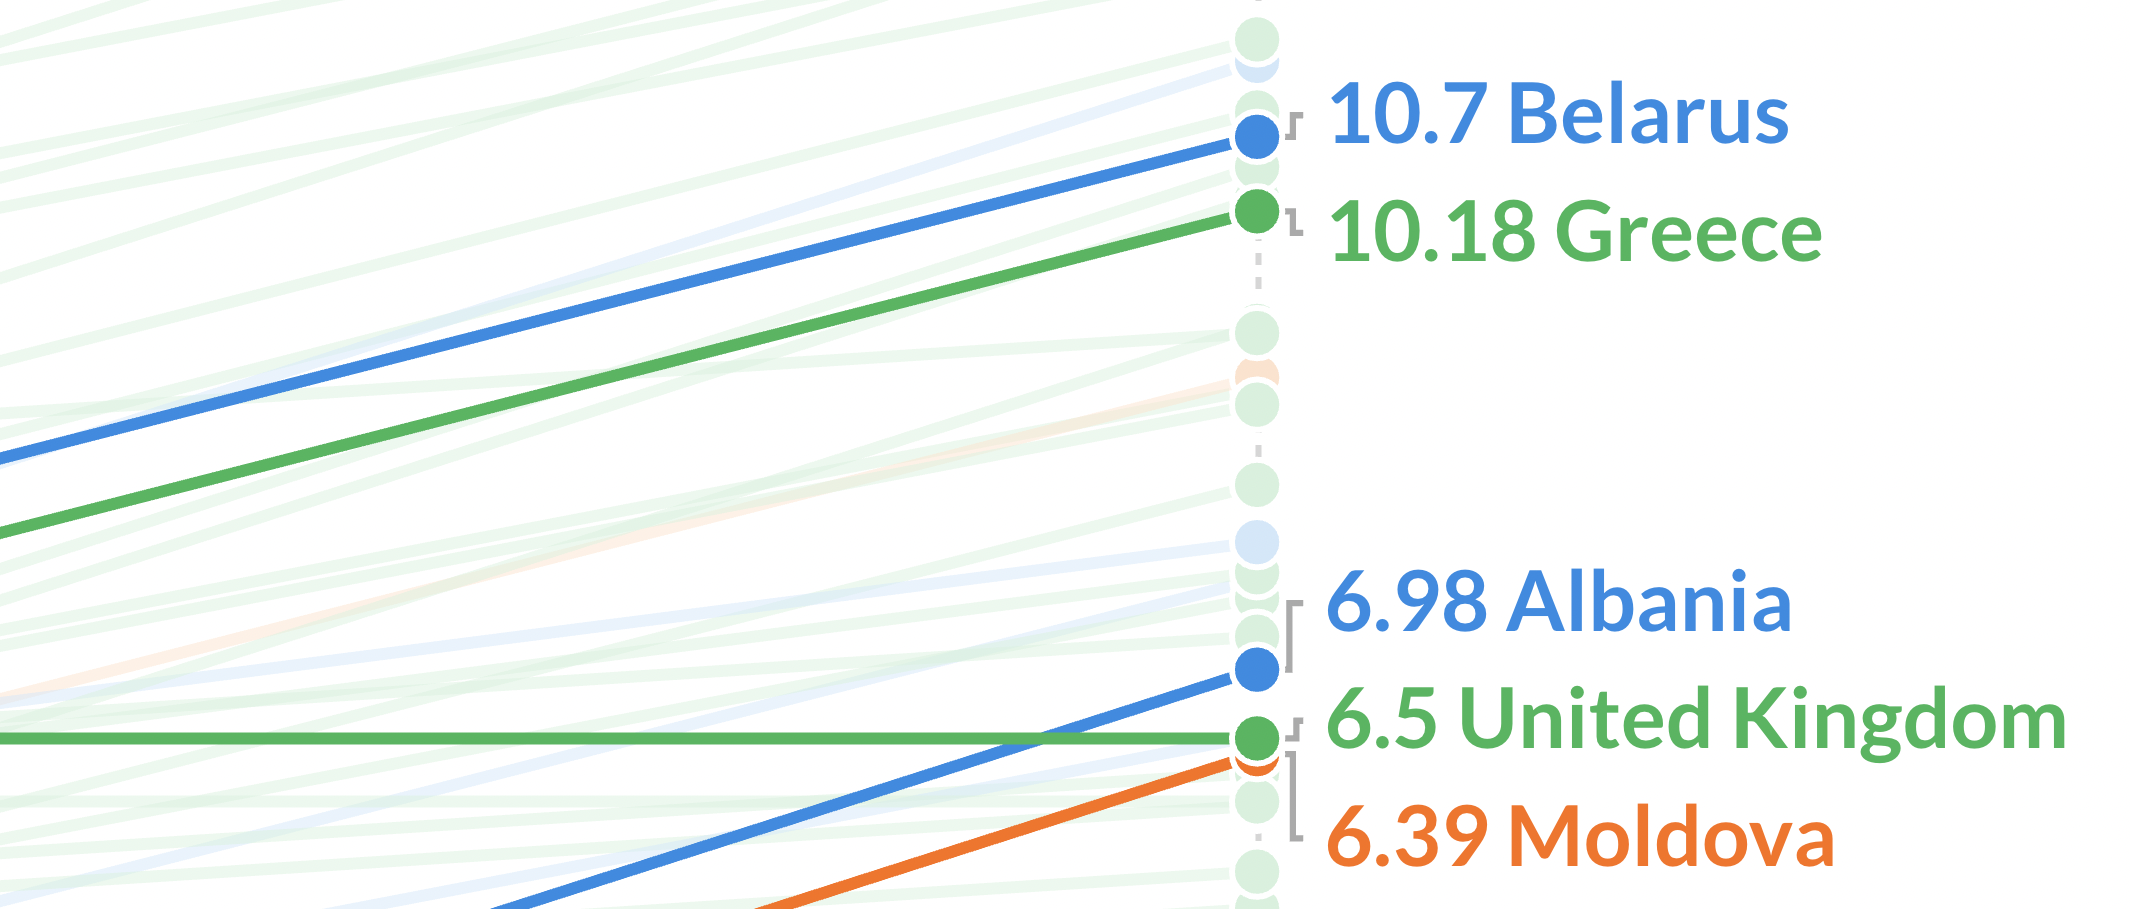 Improved labelling in the Slope chart